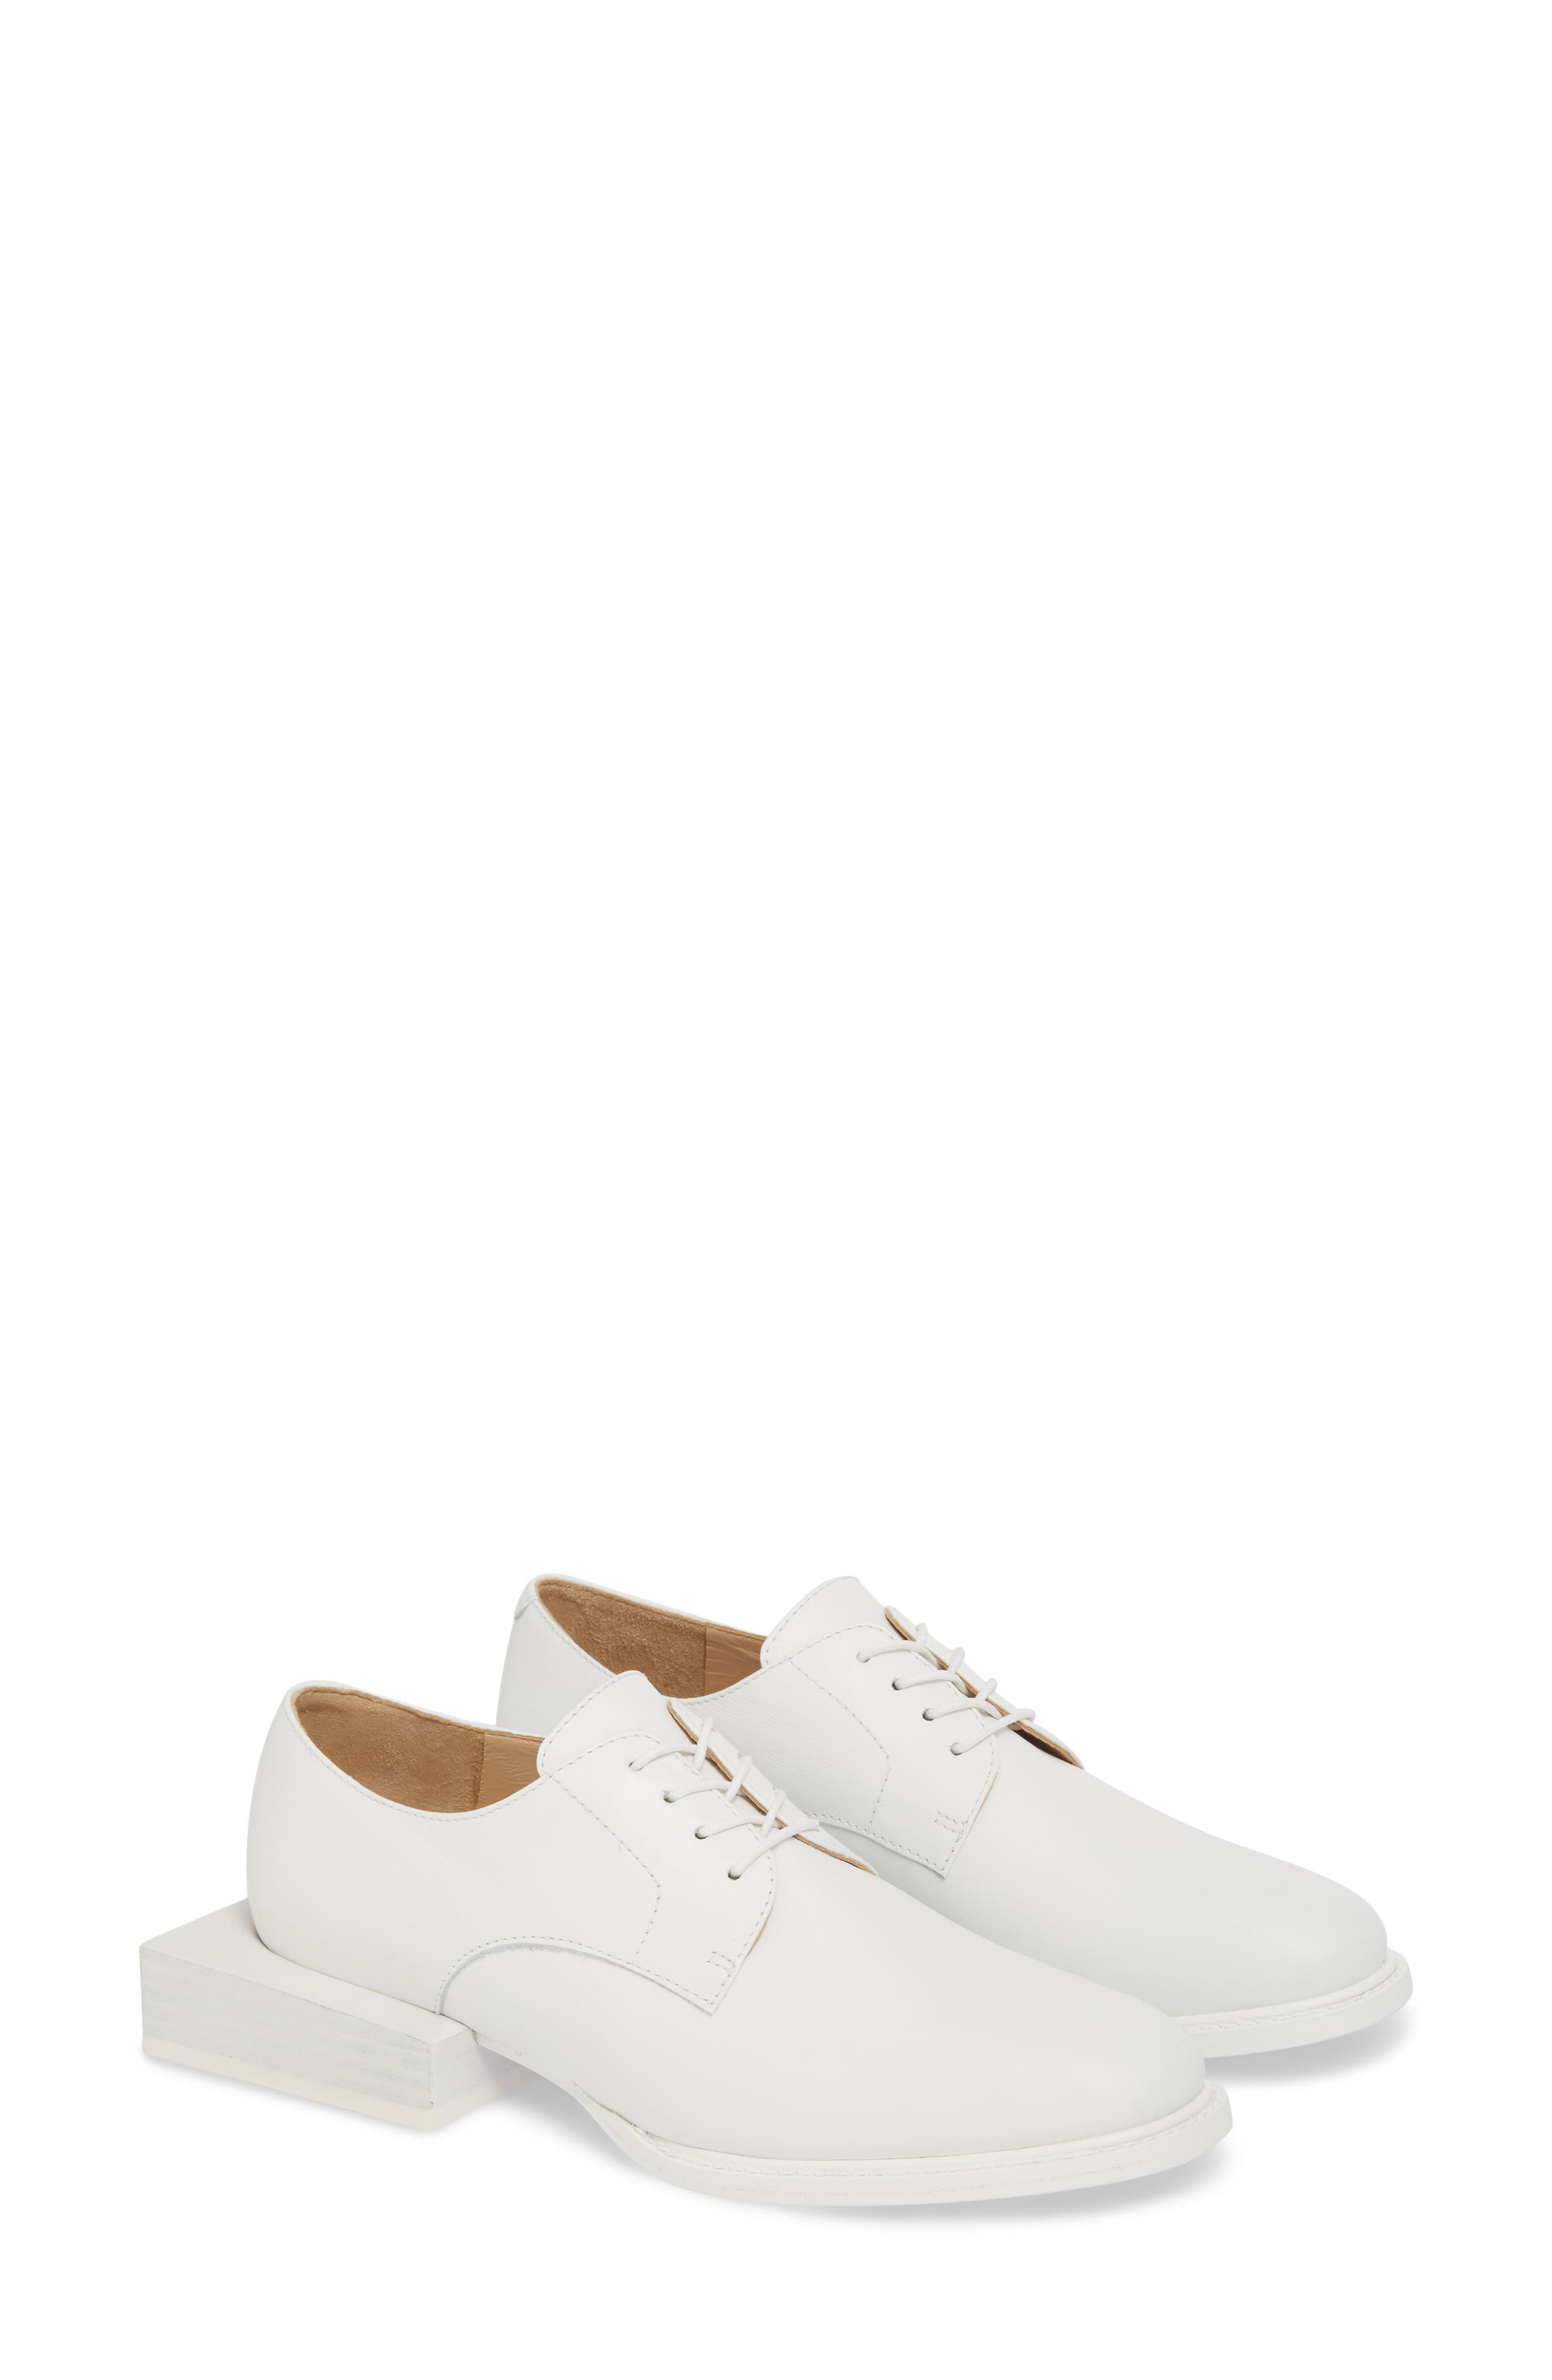 Jacquemus Les Chaussures Clown Oxford (Women)